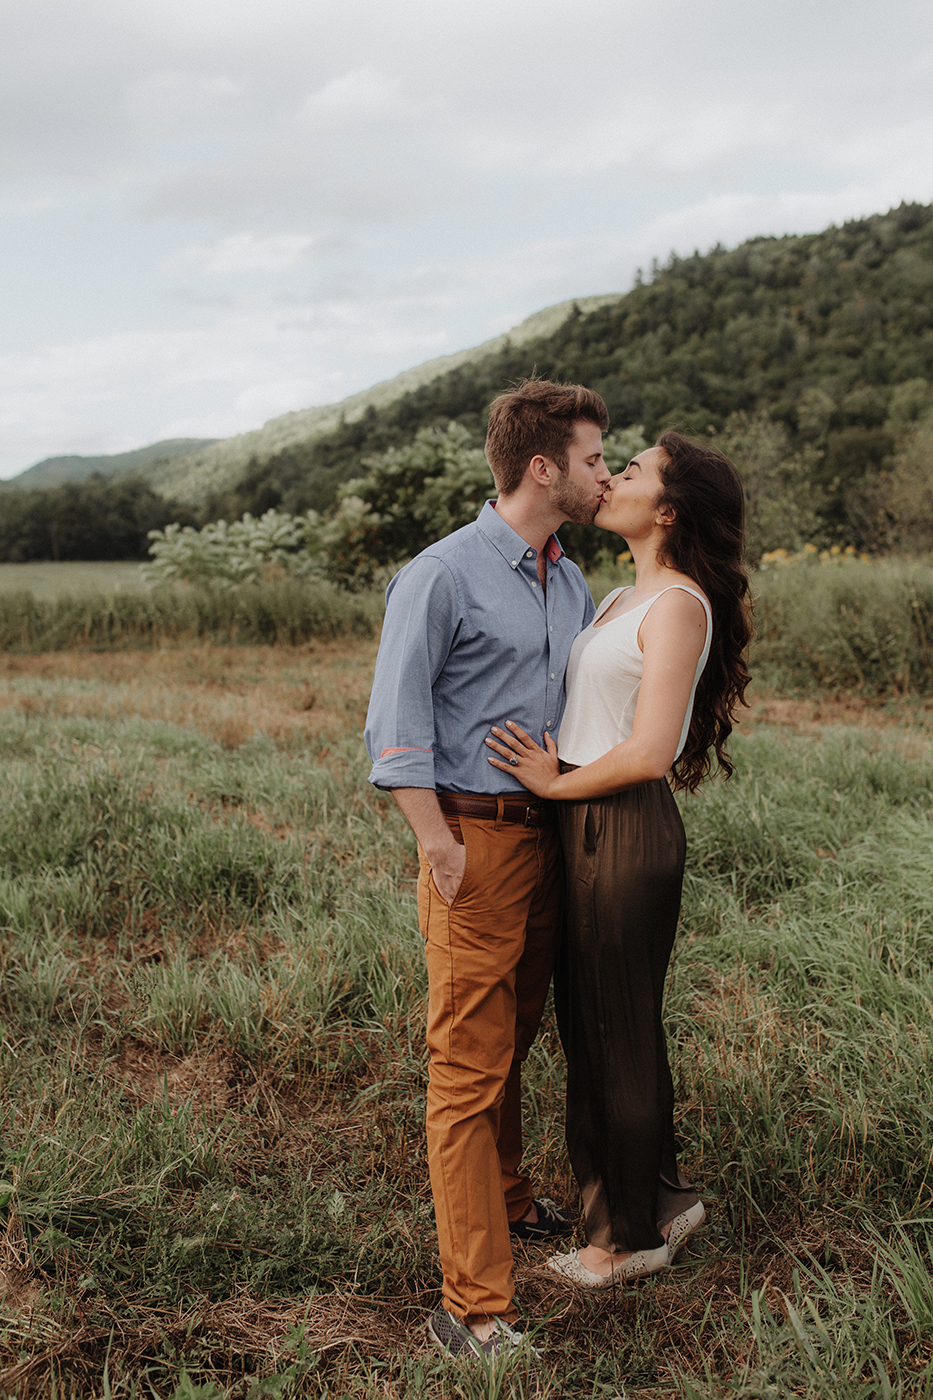 central-vermont-engagement-photographer-3.jpg